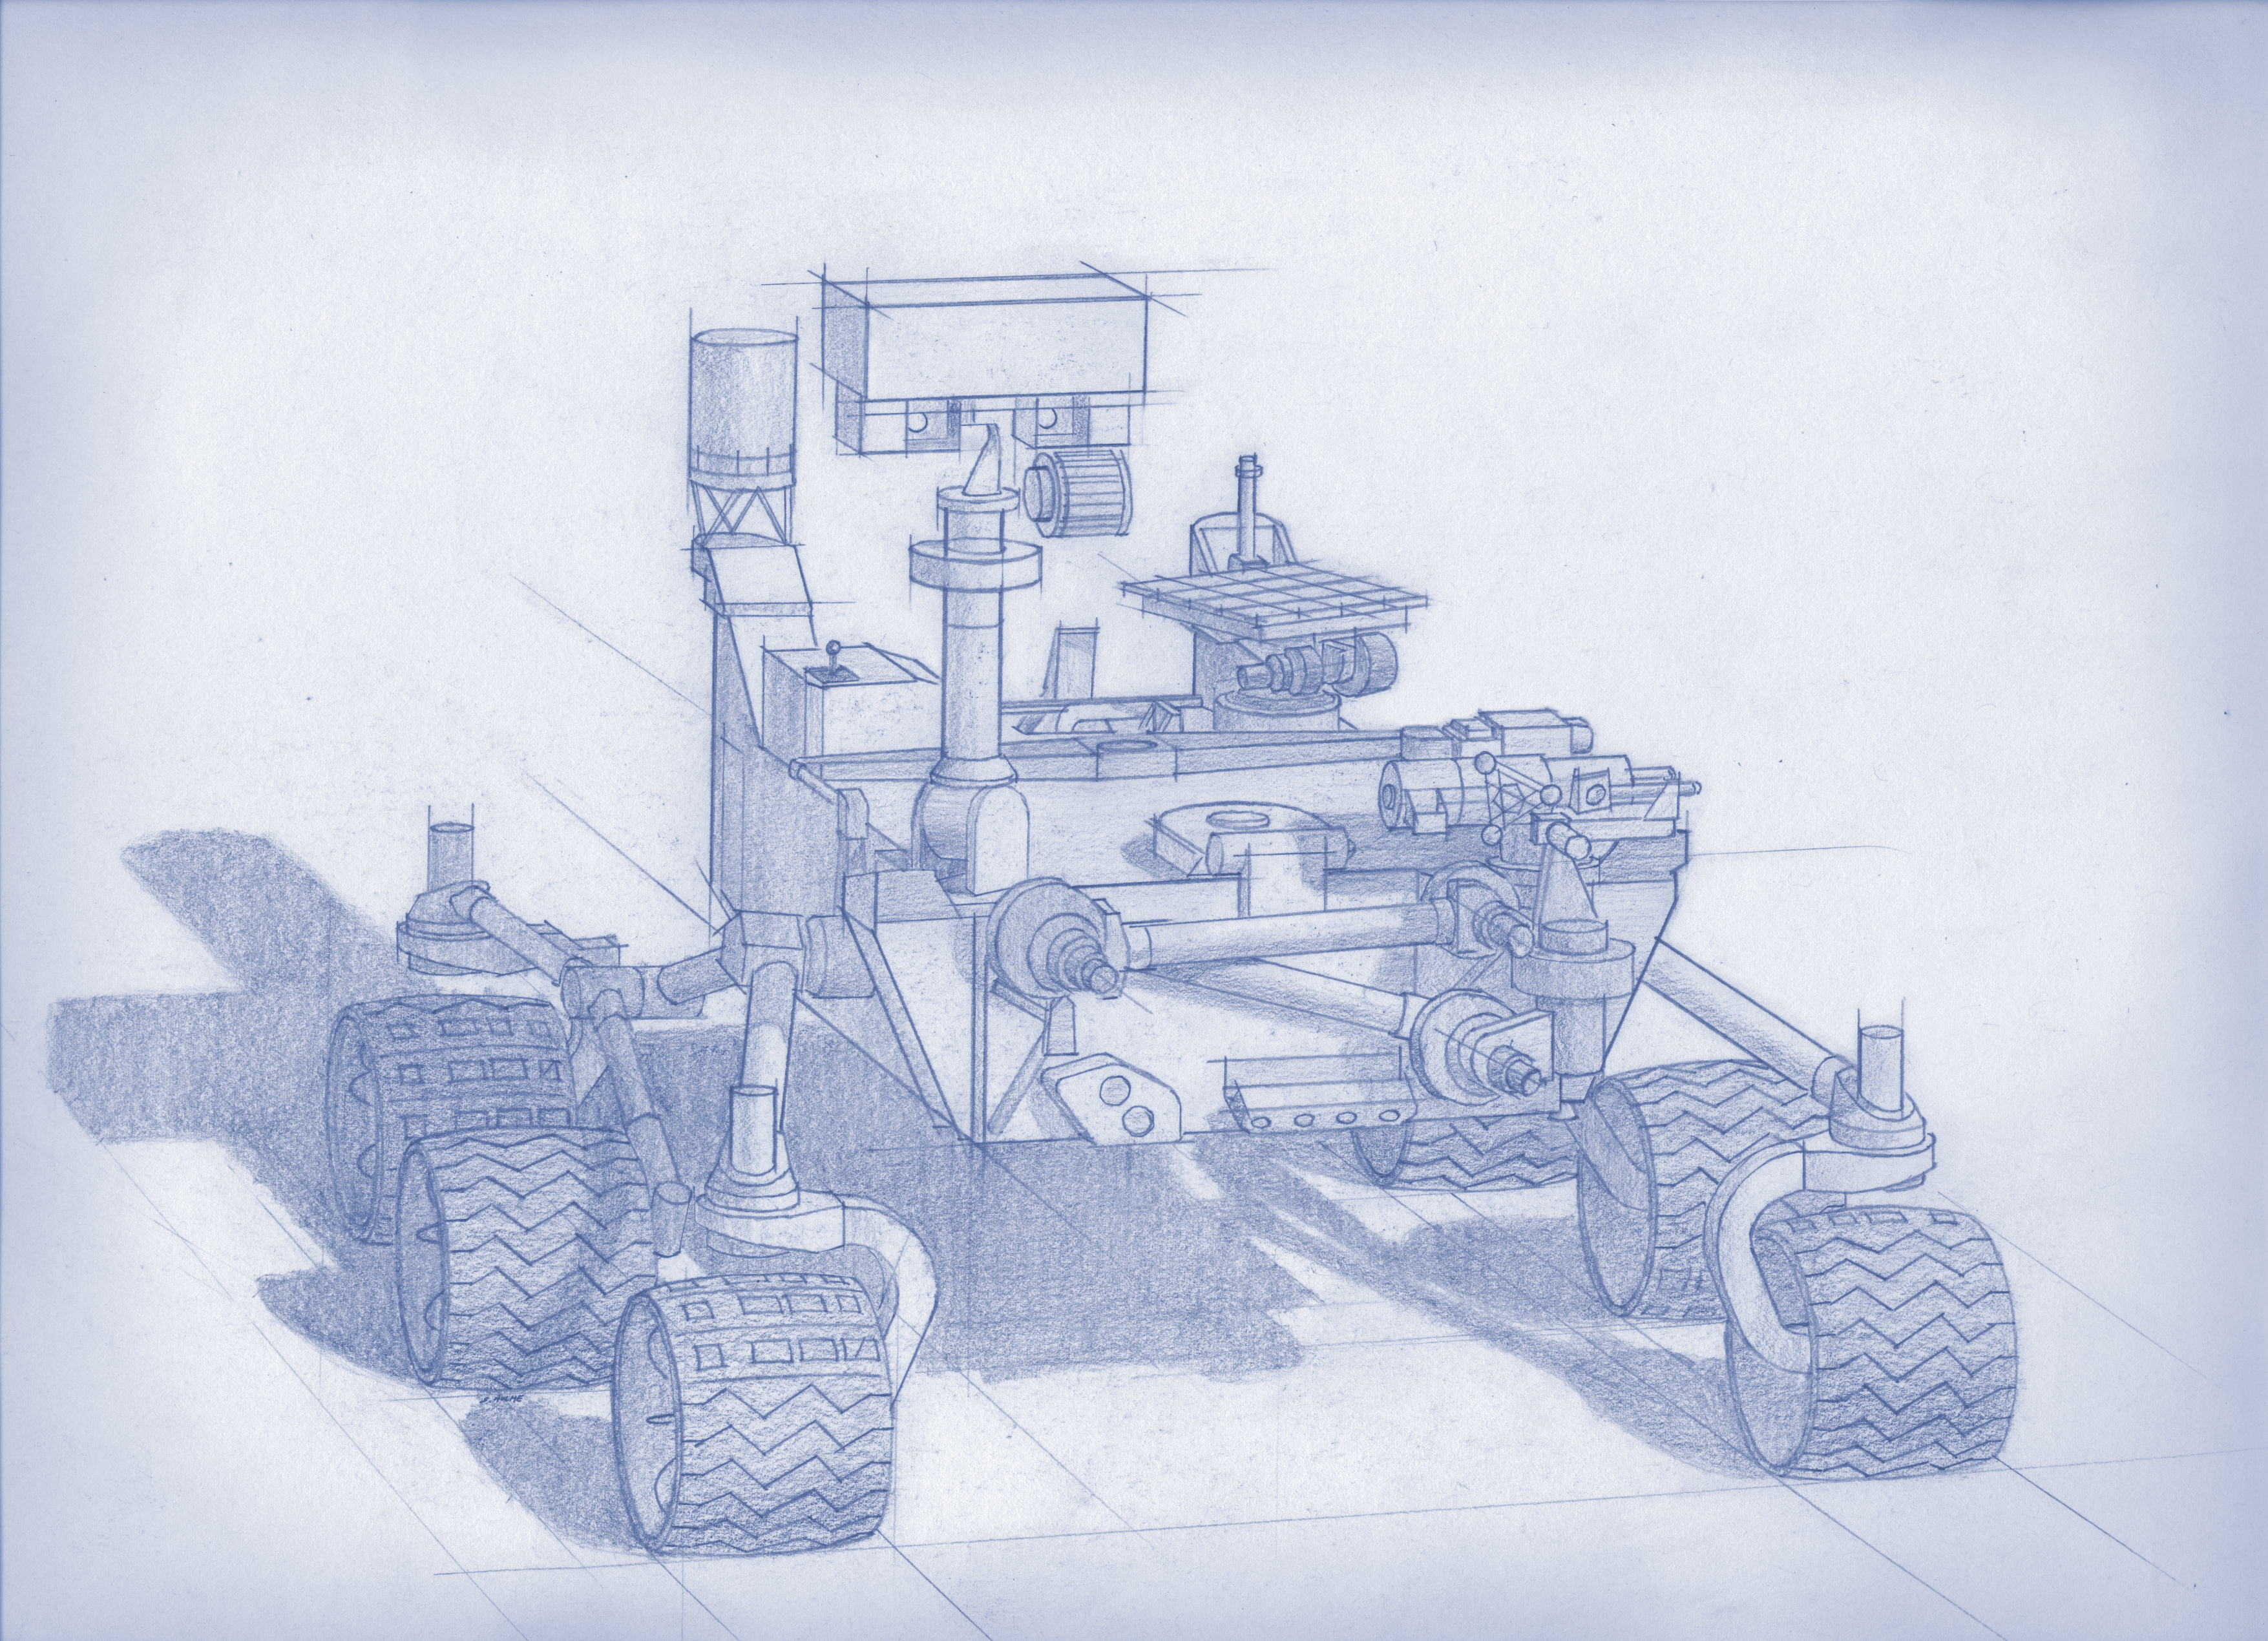 mission to mars concept art - photo #34